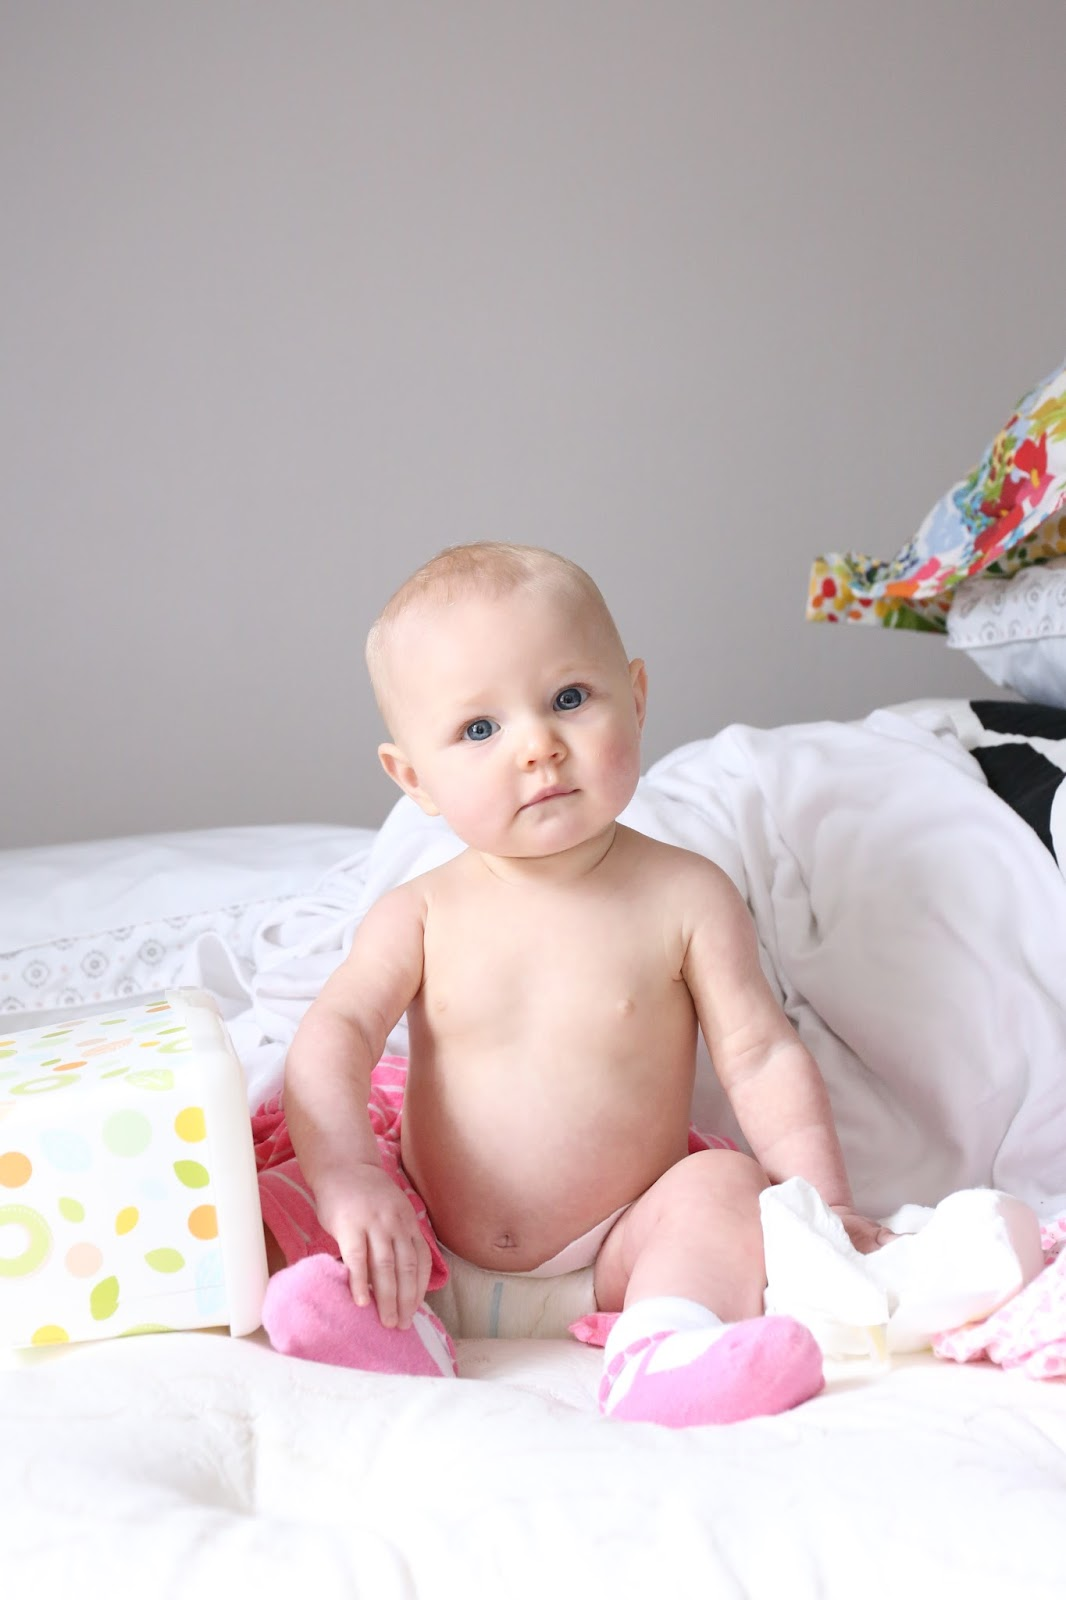 Clara June Farrin at 7 months old.